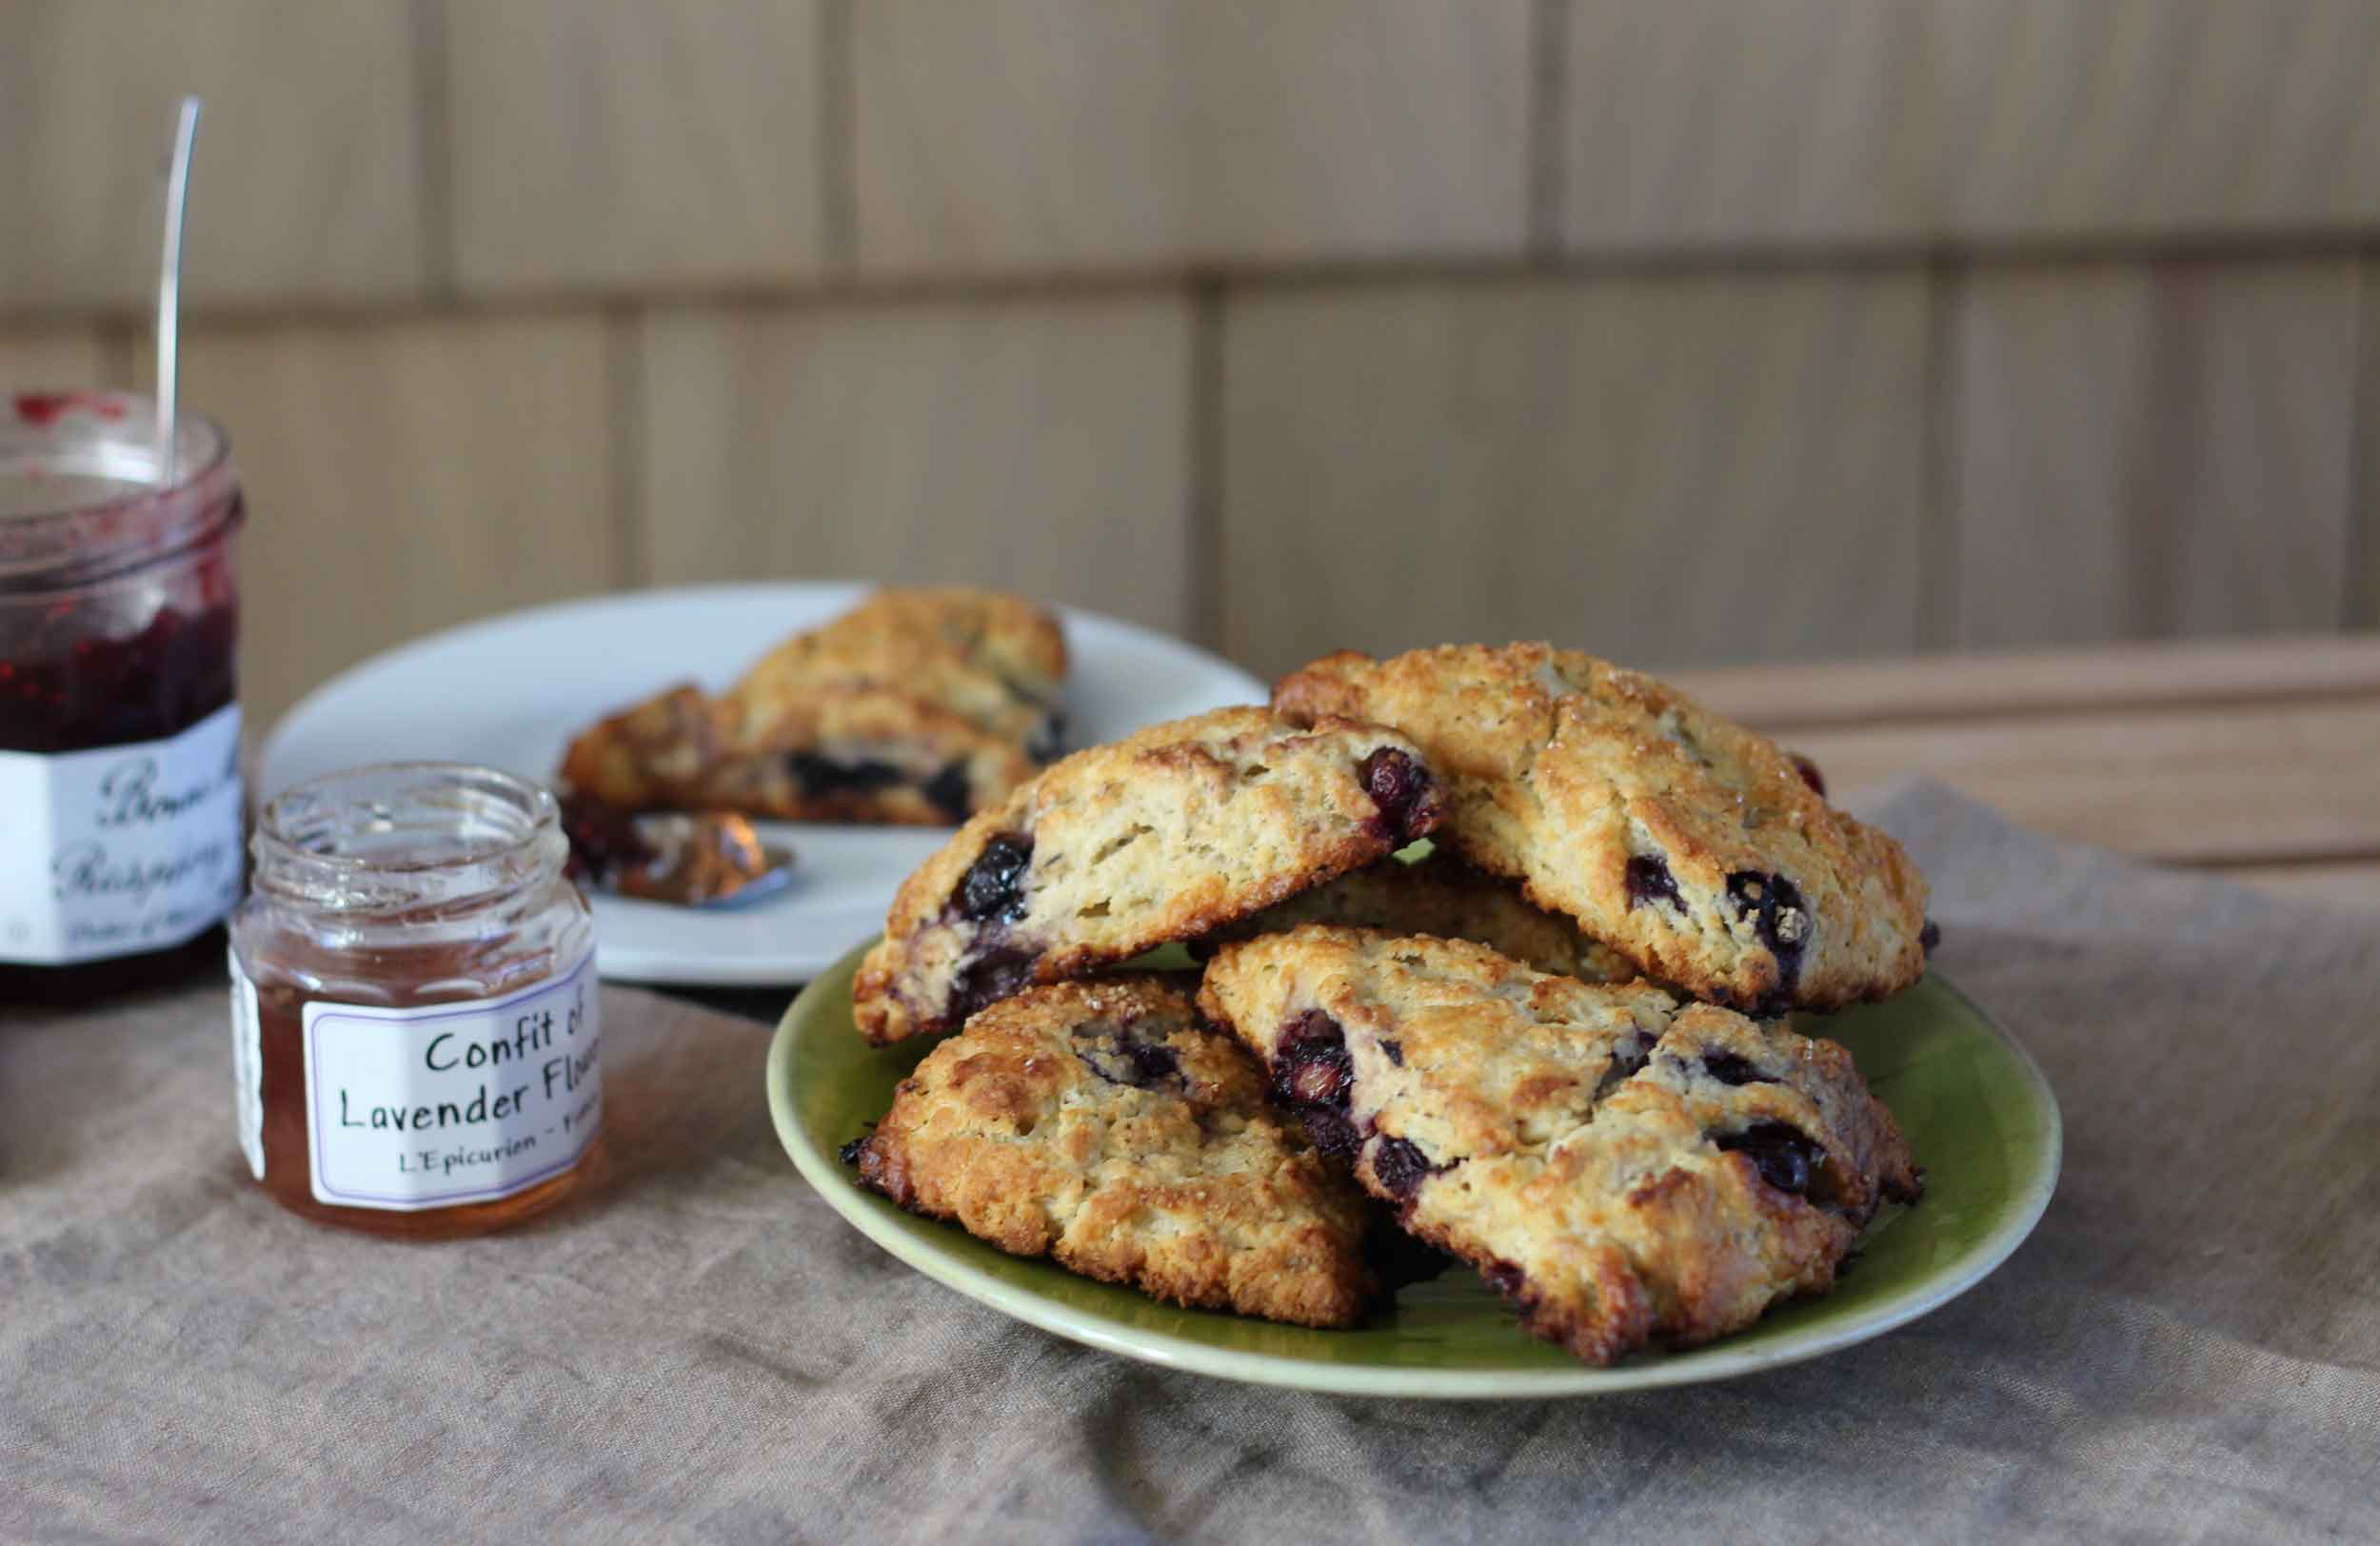 A freshly baked plate of blueberry lavender scones, with some jams waiting to be slathered on them. Scone recipe at ThreadandWhisk.com.